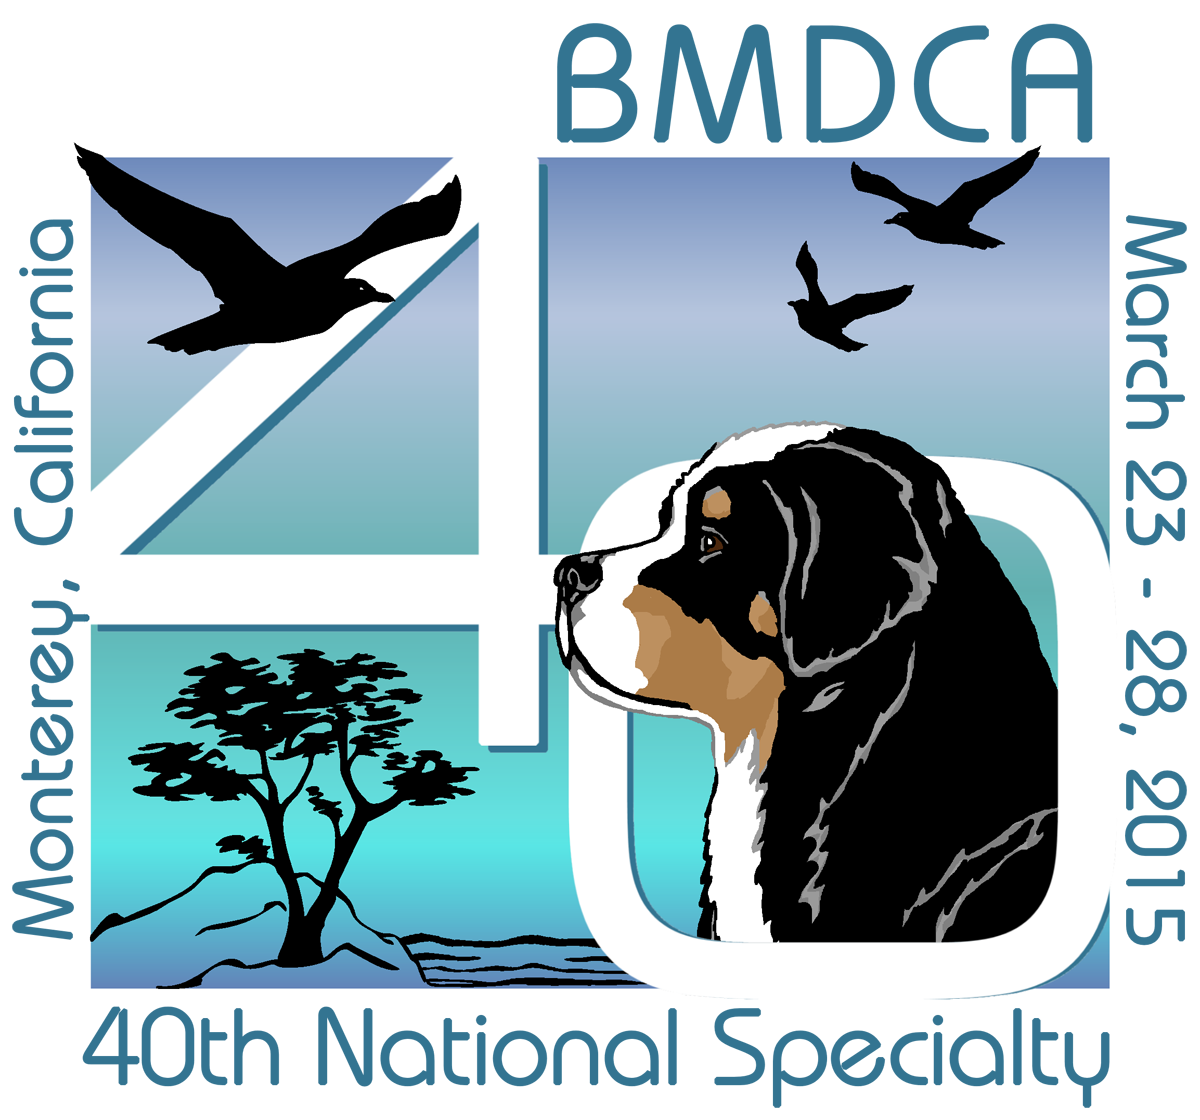 http://www.bmdca.org/specialty/2015/index.php